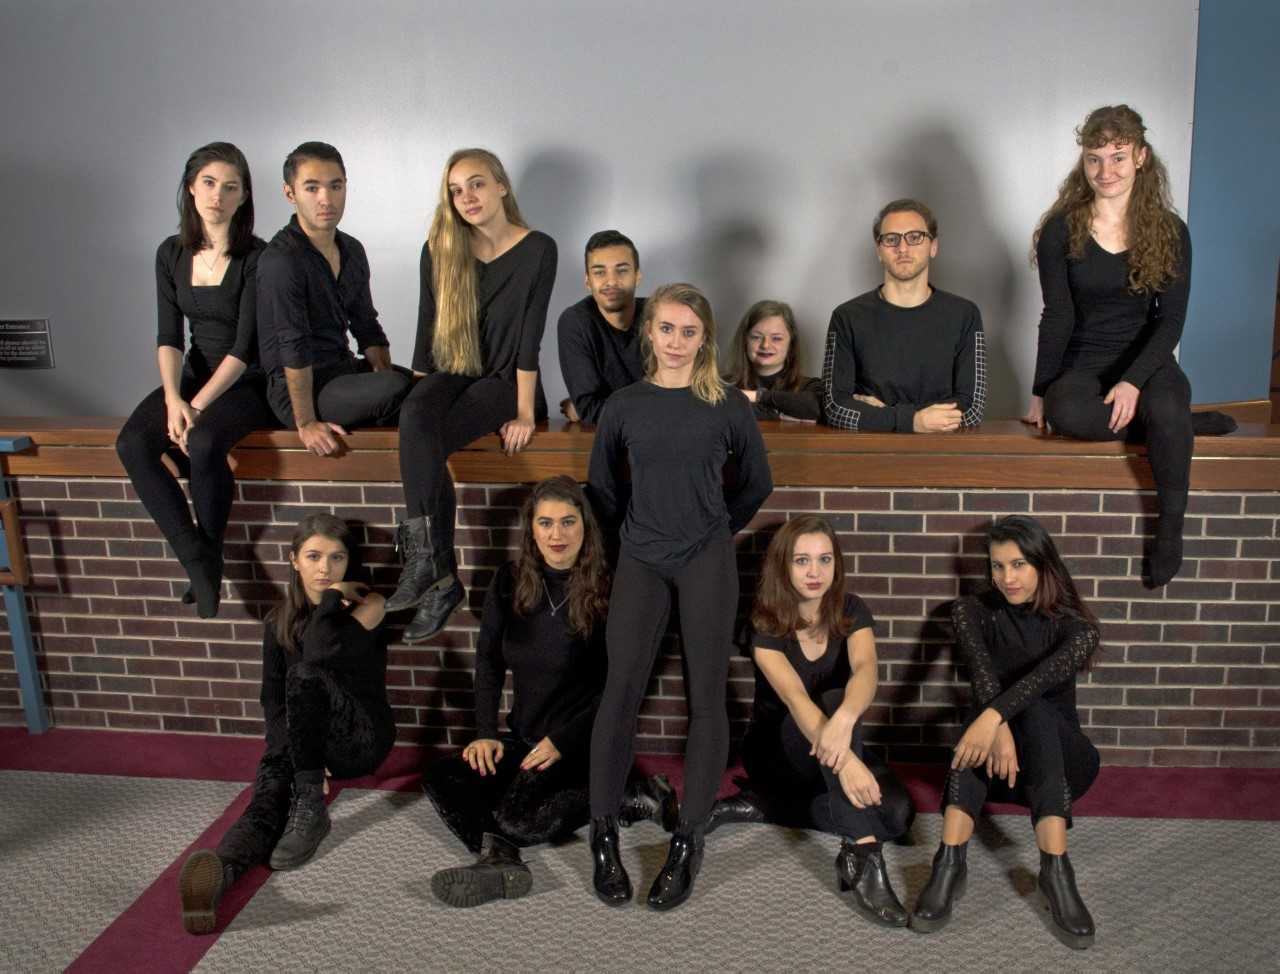 From left to right, top row: Grace Petron, Dominic Fortunato, Sarah Swanson, Lucas De Marinis, Megan Lay, Hunter Hoffman and Carrie VanOsten. Bottom row: Rachel Rhodanz, Niusha Karkehabadi, Sarah Taylor, Katherine Hotinger and Marcela Gomez Lugo